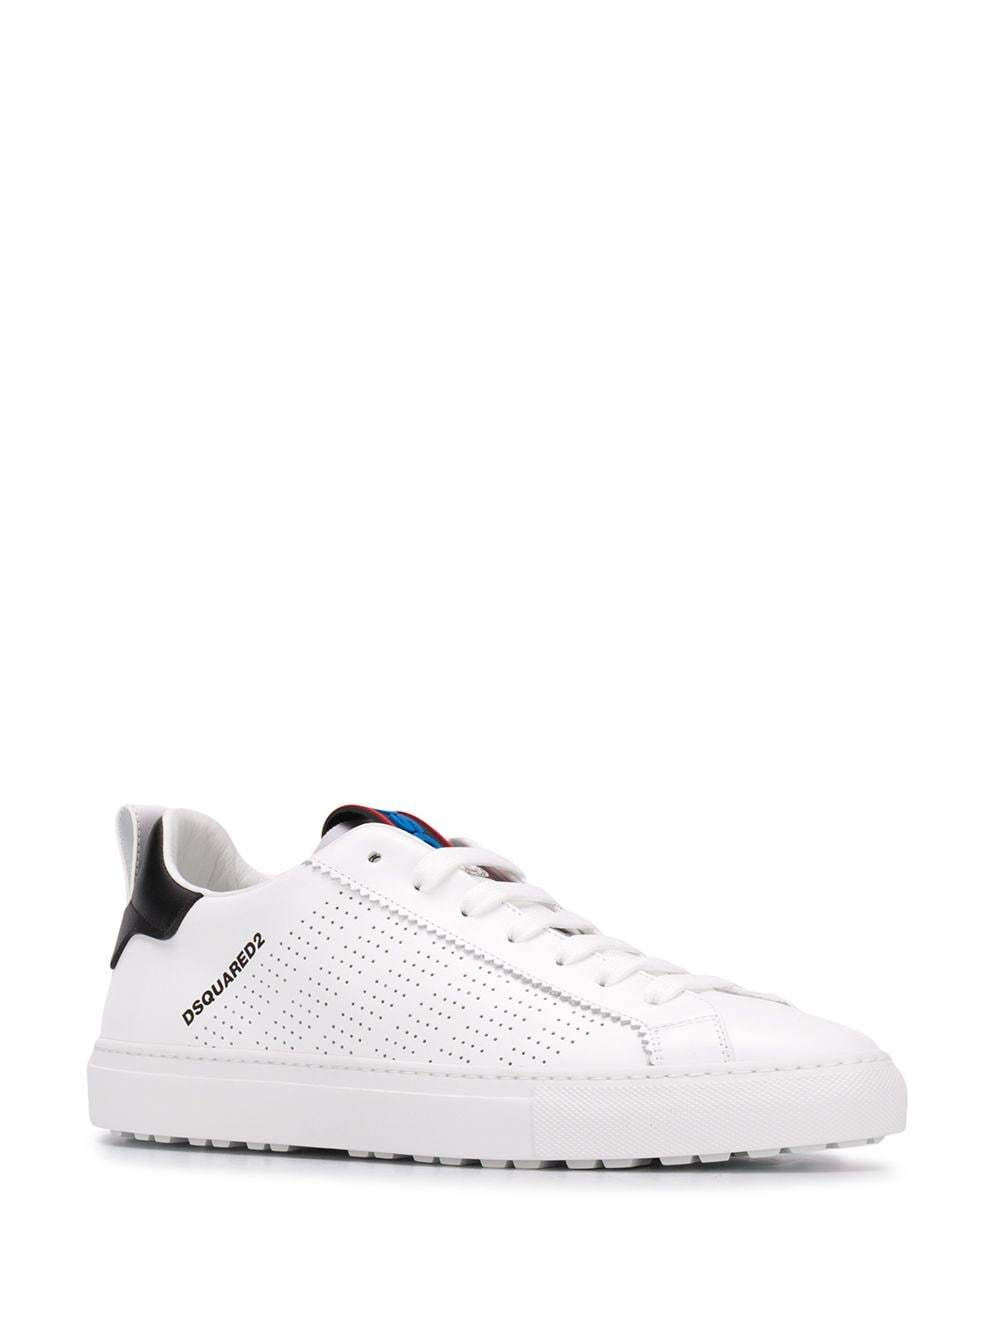 DSQUARED Logo Print Low Top Sneakers Bianco/Multicolor